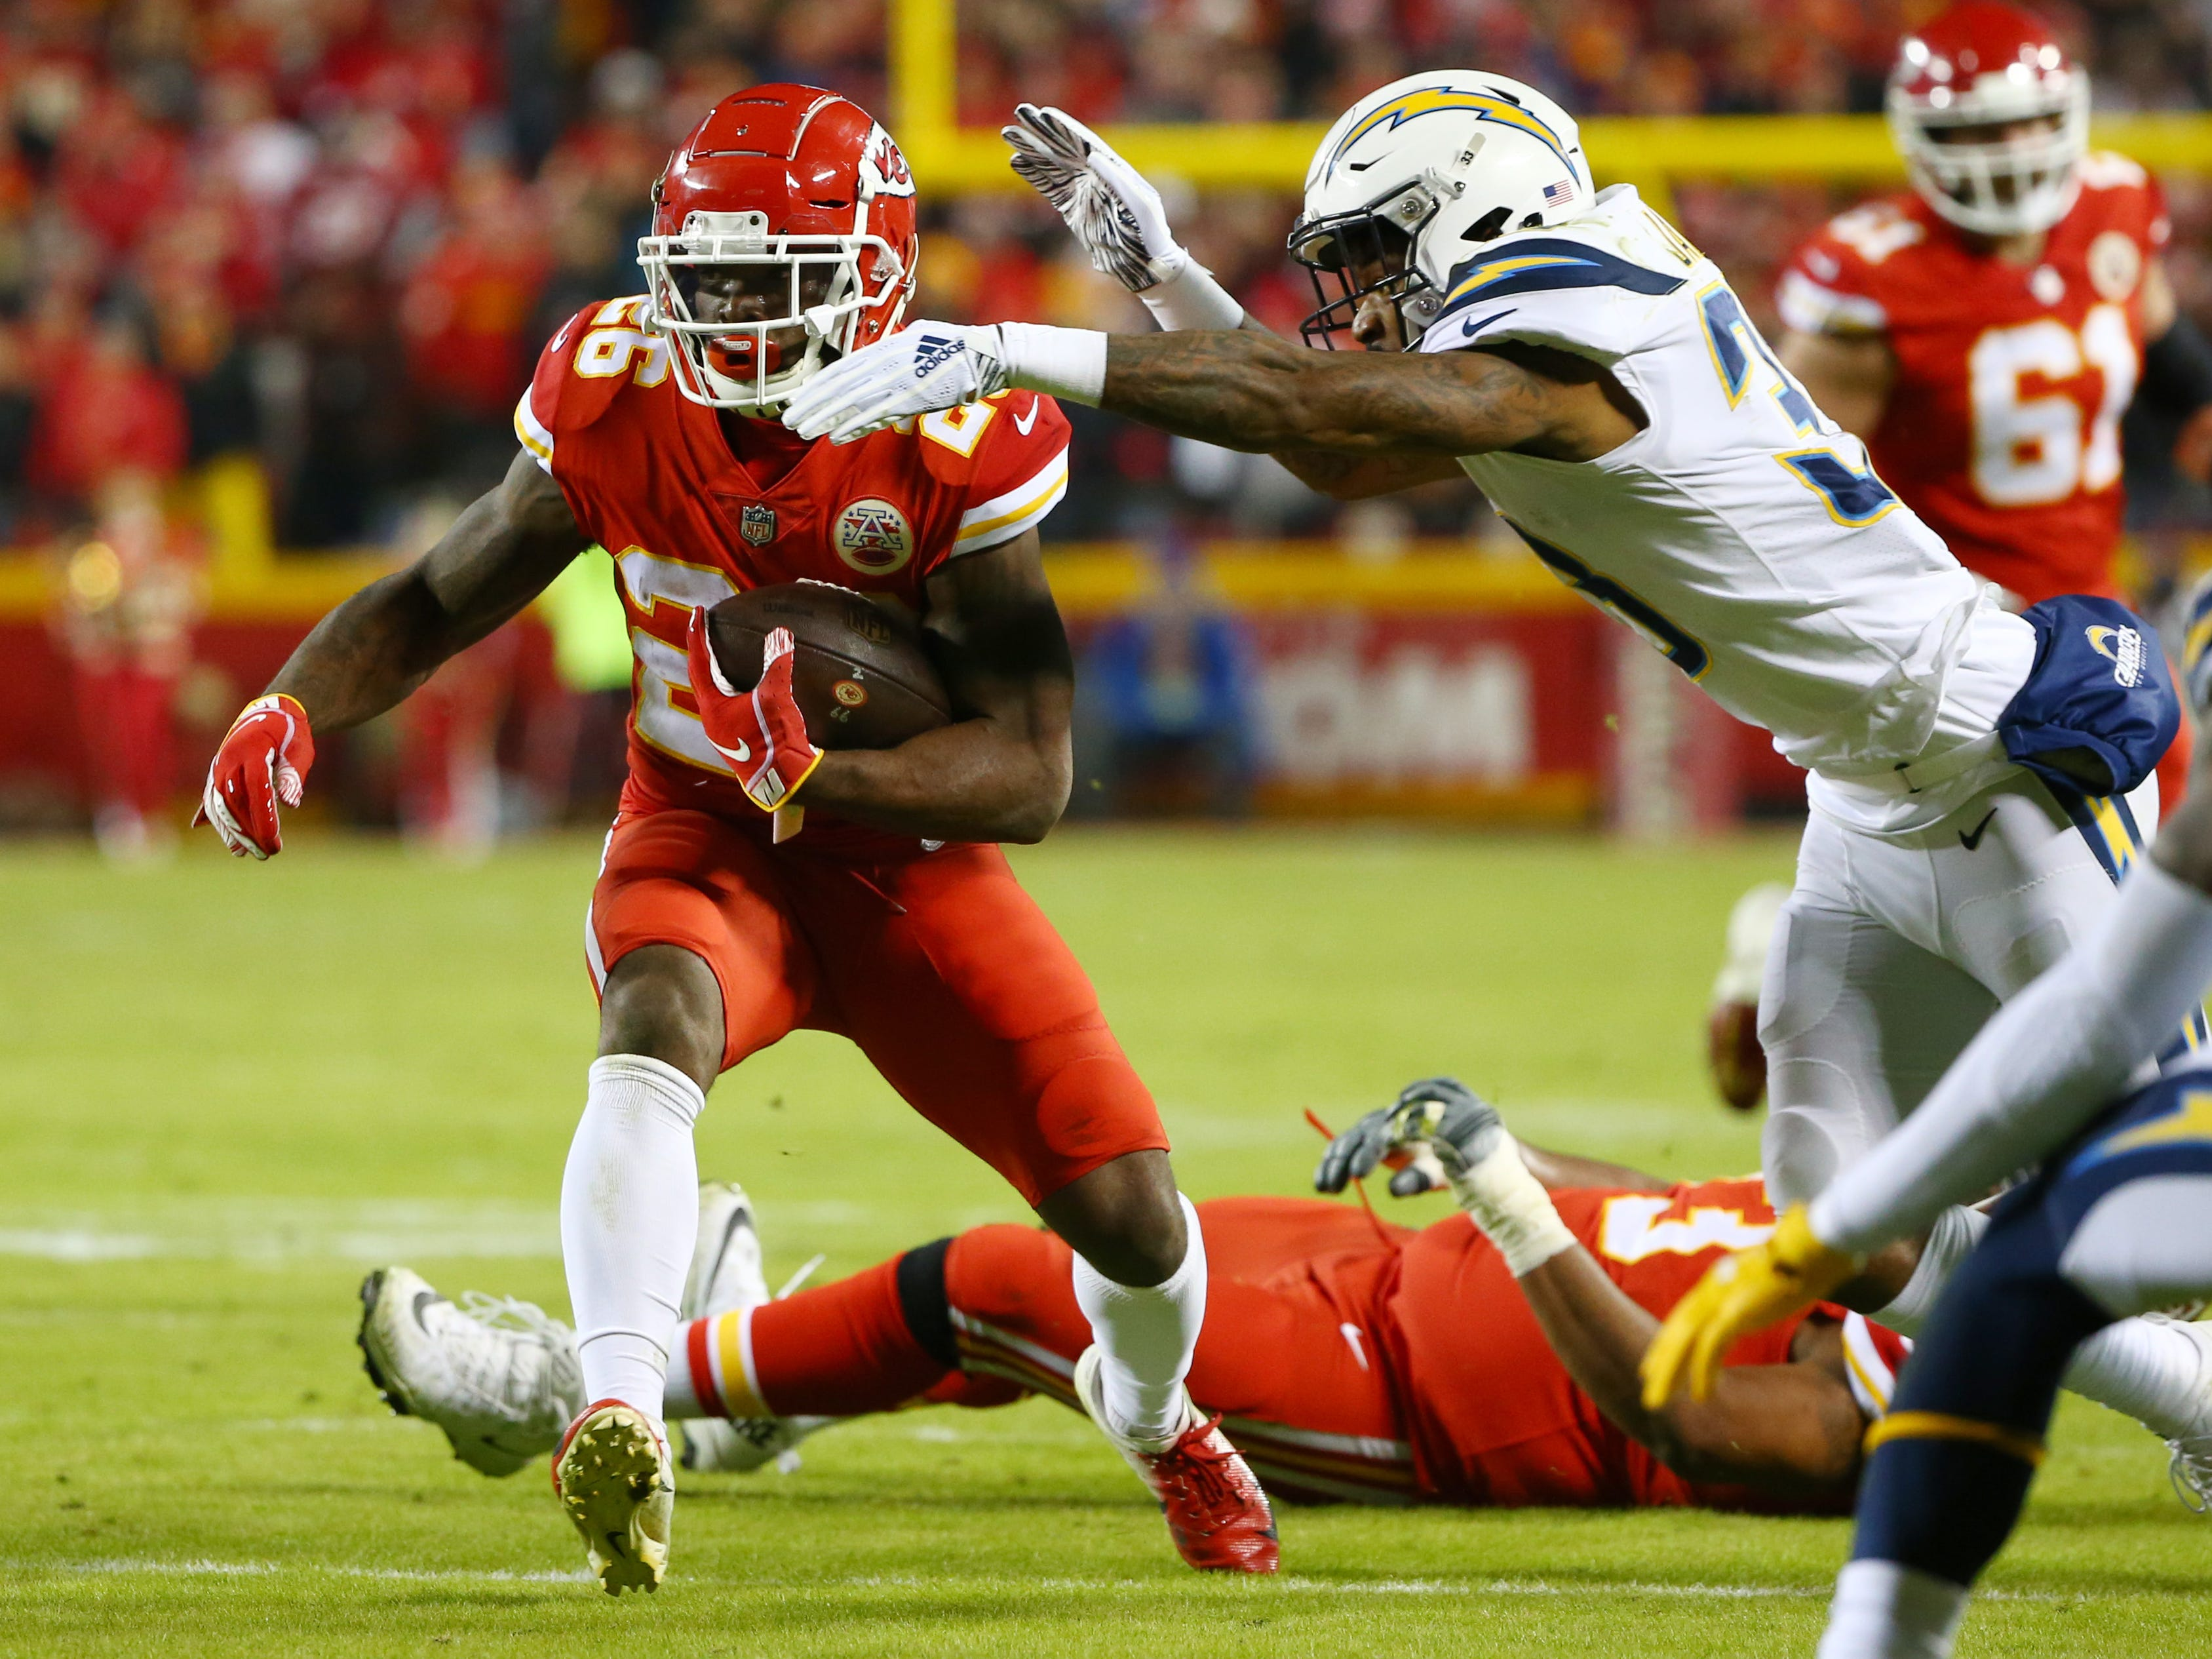 Kansas City Chiefs running back Damien Williams (26) is tackled by Los Angeles Chargers safety Derwin James (33) in the first half at Arrowhead Stadium.